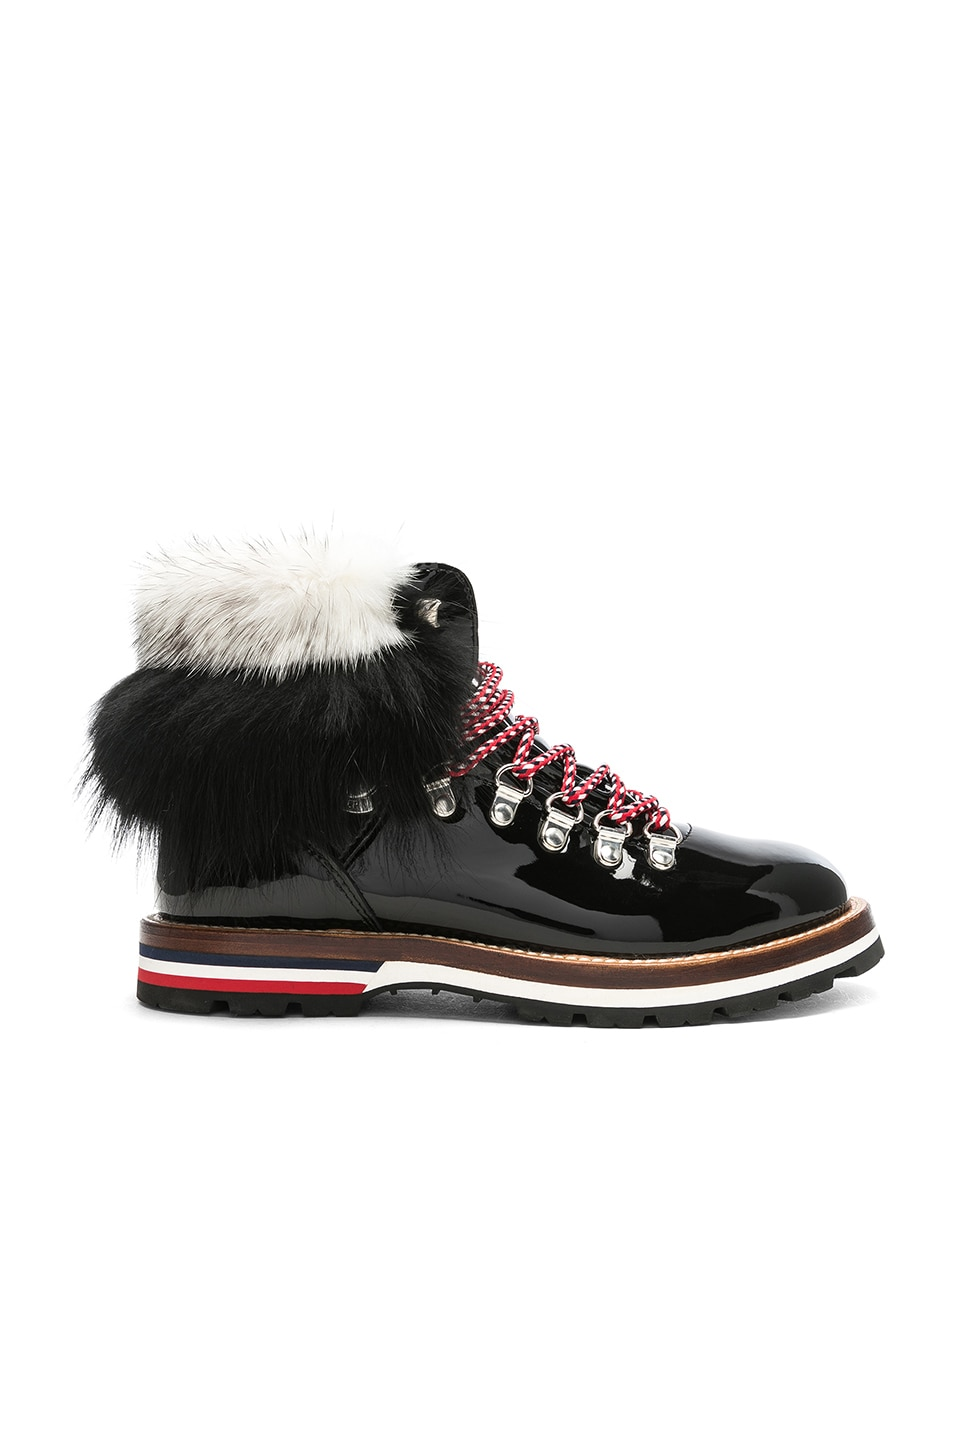 Image 1 of Moncler Patent Leather Solange Scarpa Boots With Mink Fur in Black